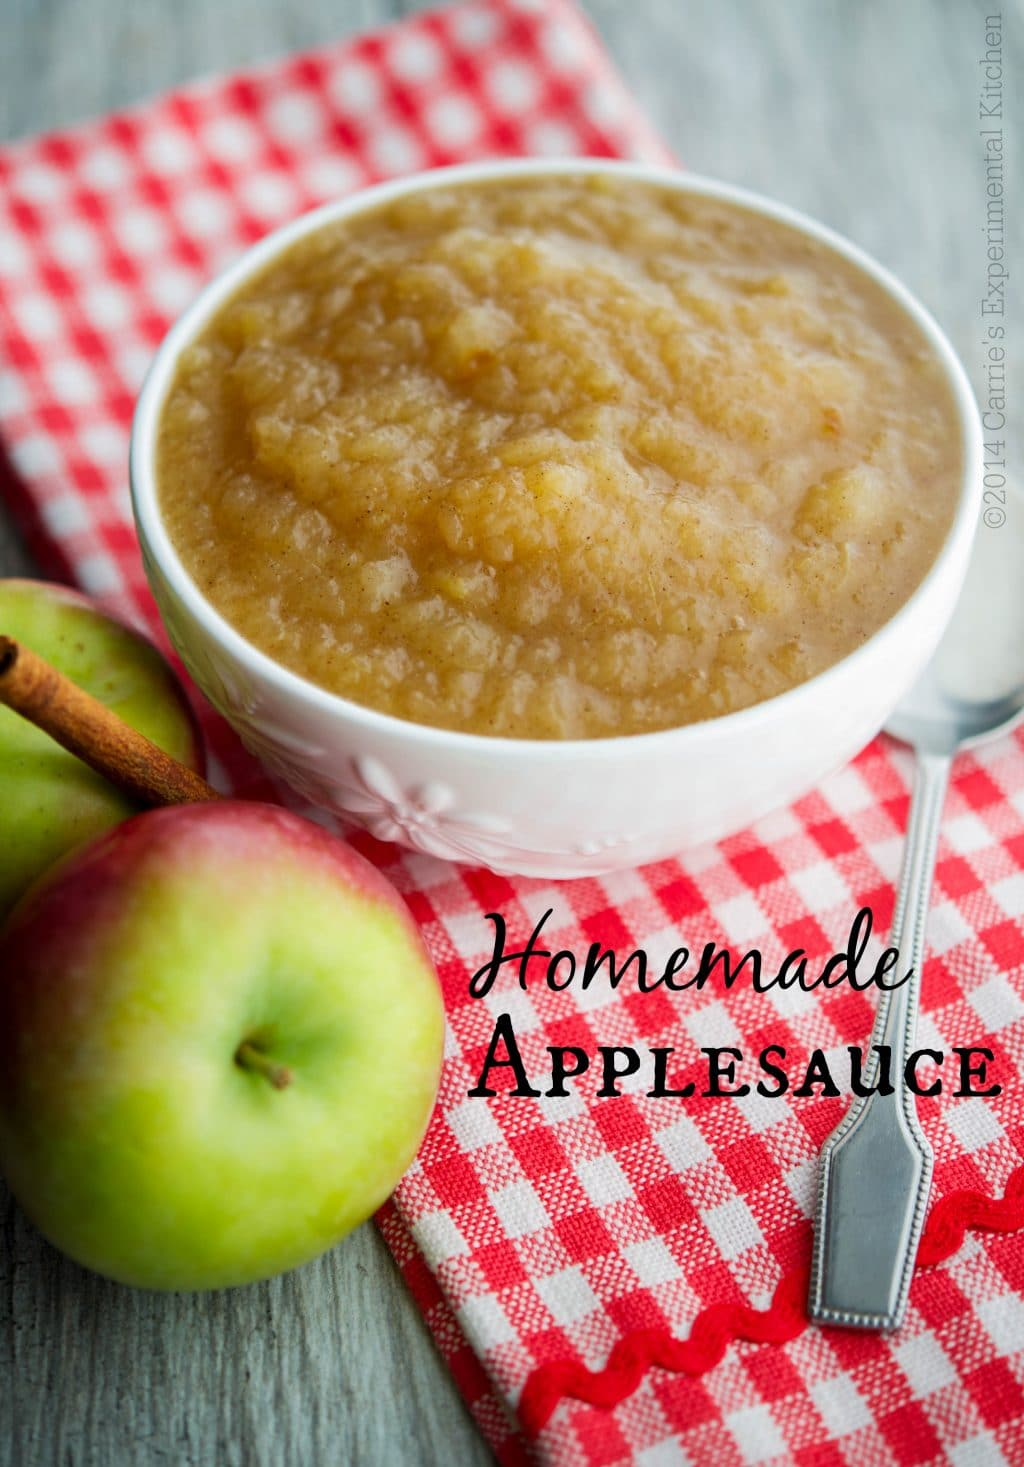 Homemade Applesauce - Carrie's Experimental Kitchen